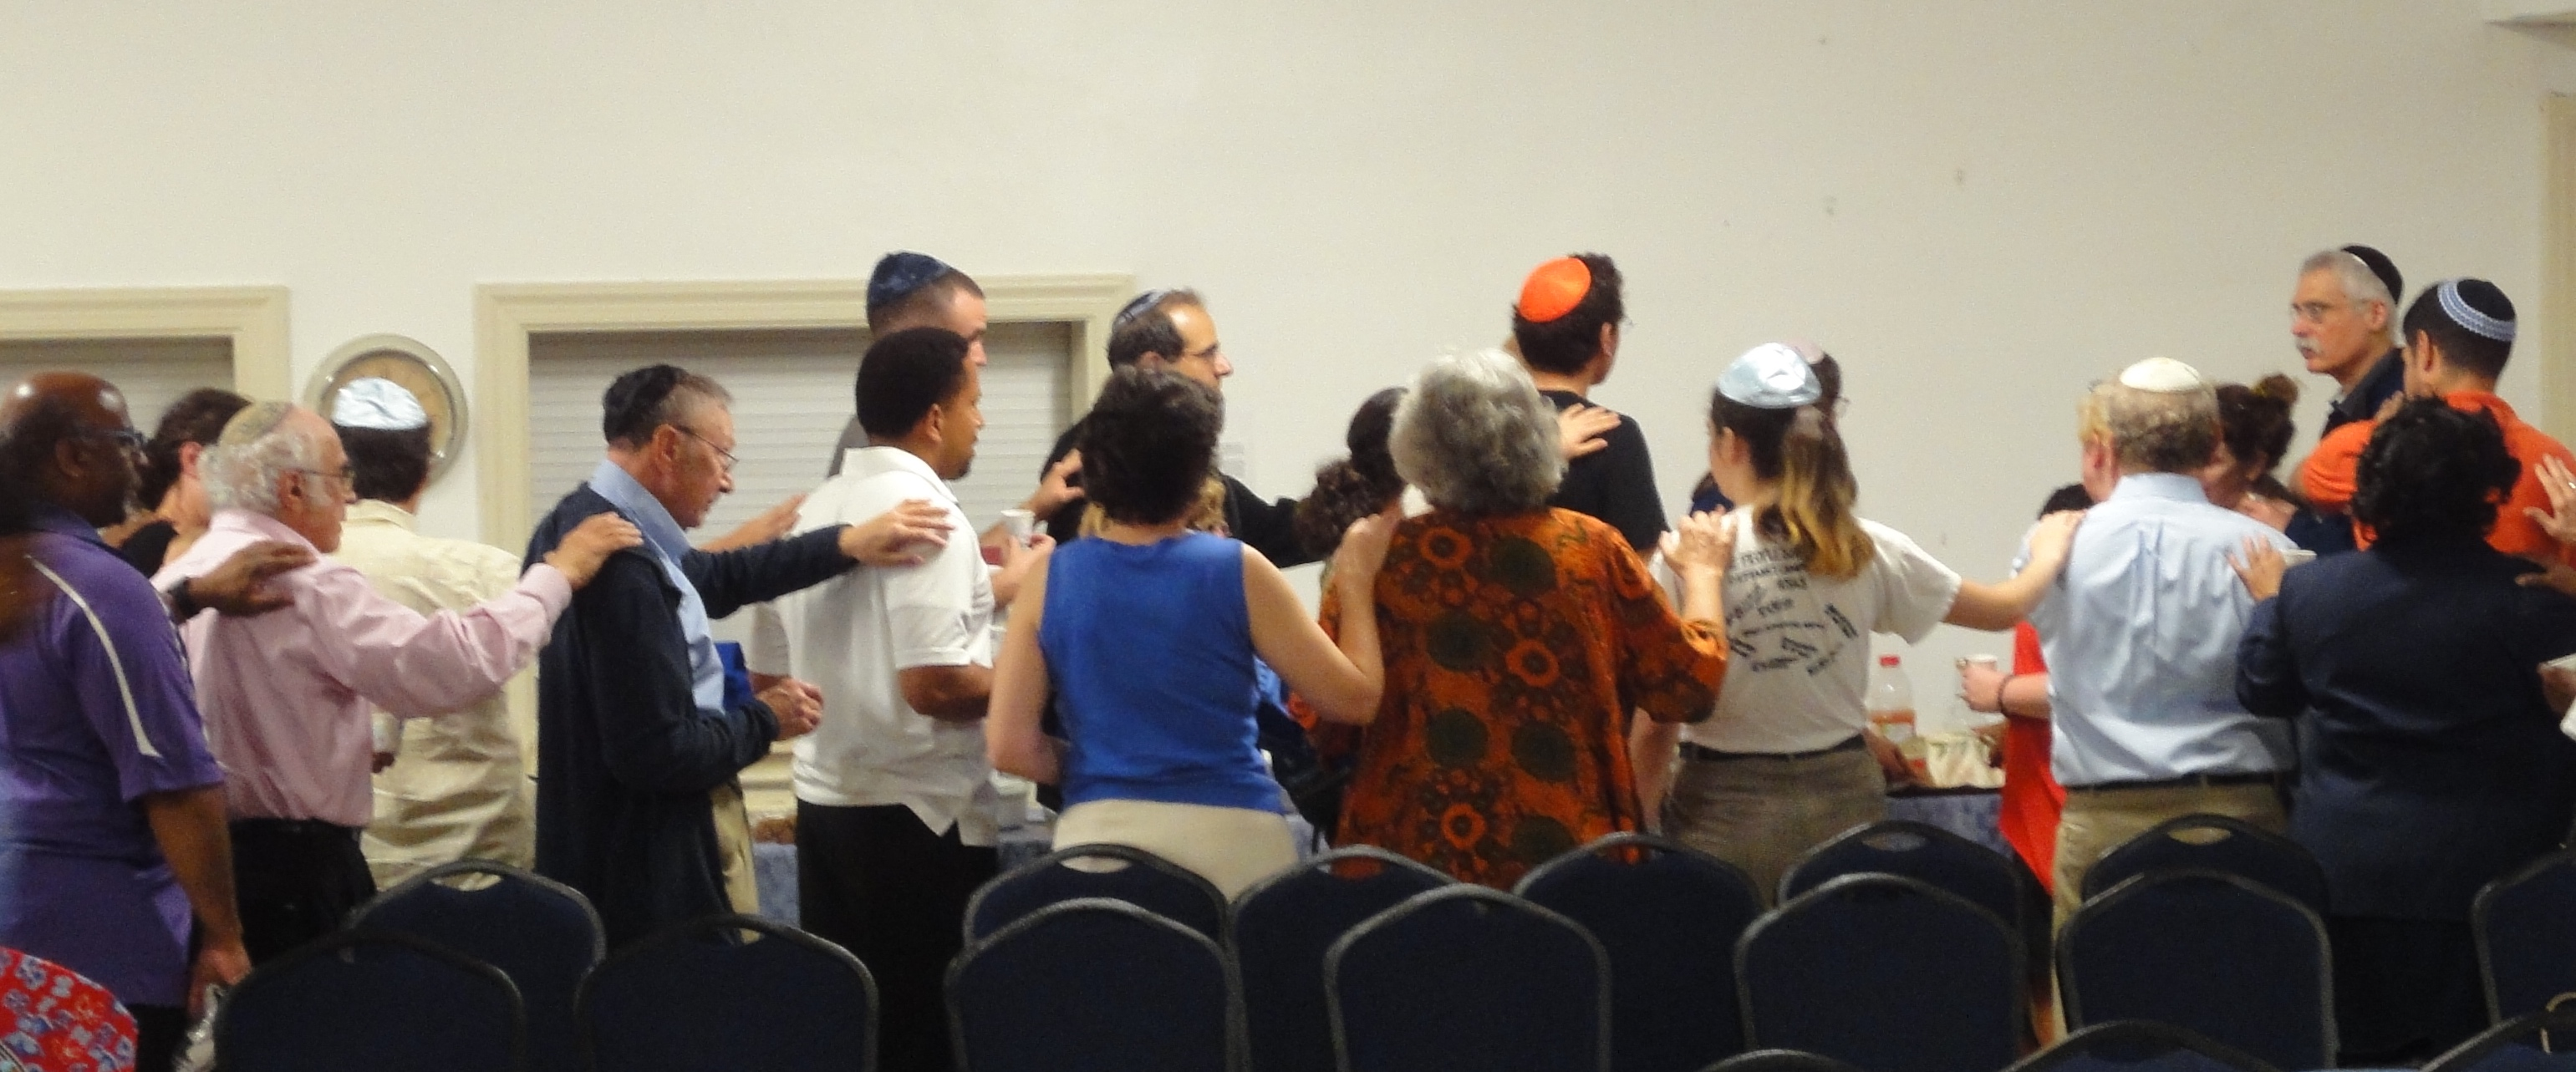 Bridging Differences Across Faith and Race: Hill Havurah and Mount Moriah